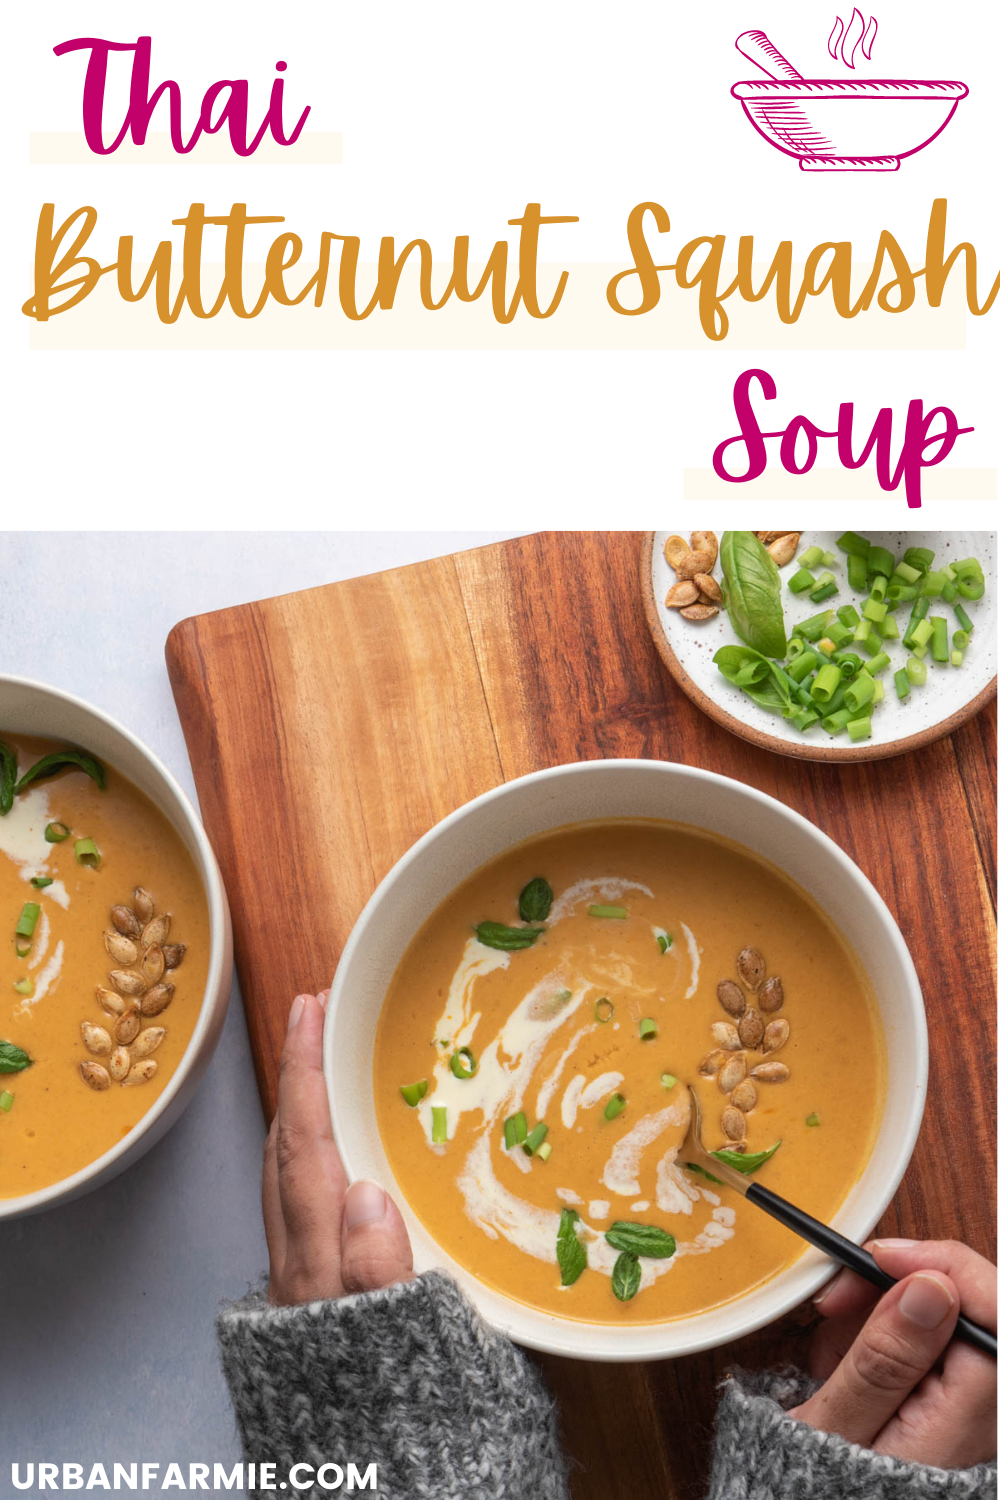 Thai Curried Butternut Squash Soup With Coconut Milk Urban Farmie Recipe Curried Butternut Squash Soup Vegetable Soup Recipes Butternut Squash Soup